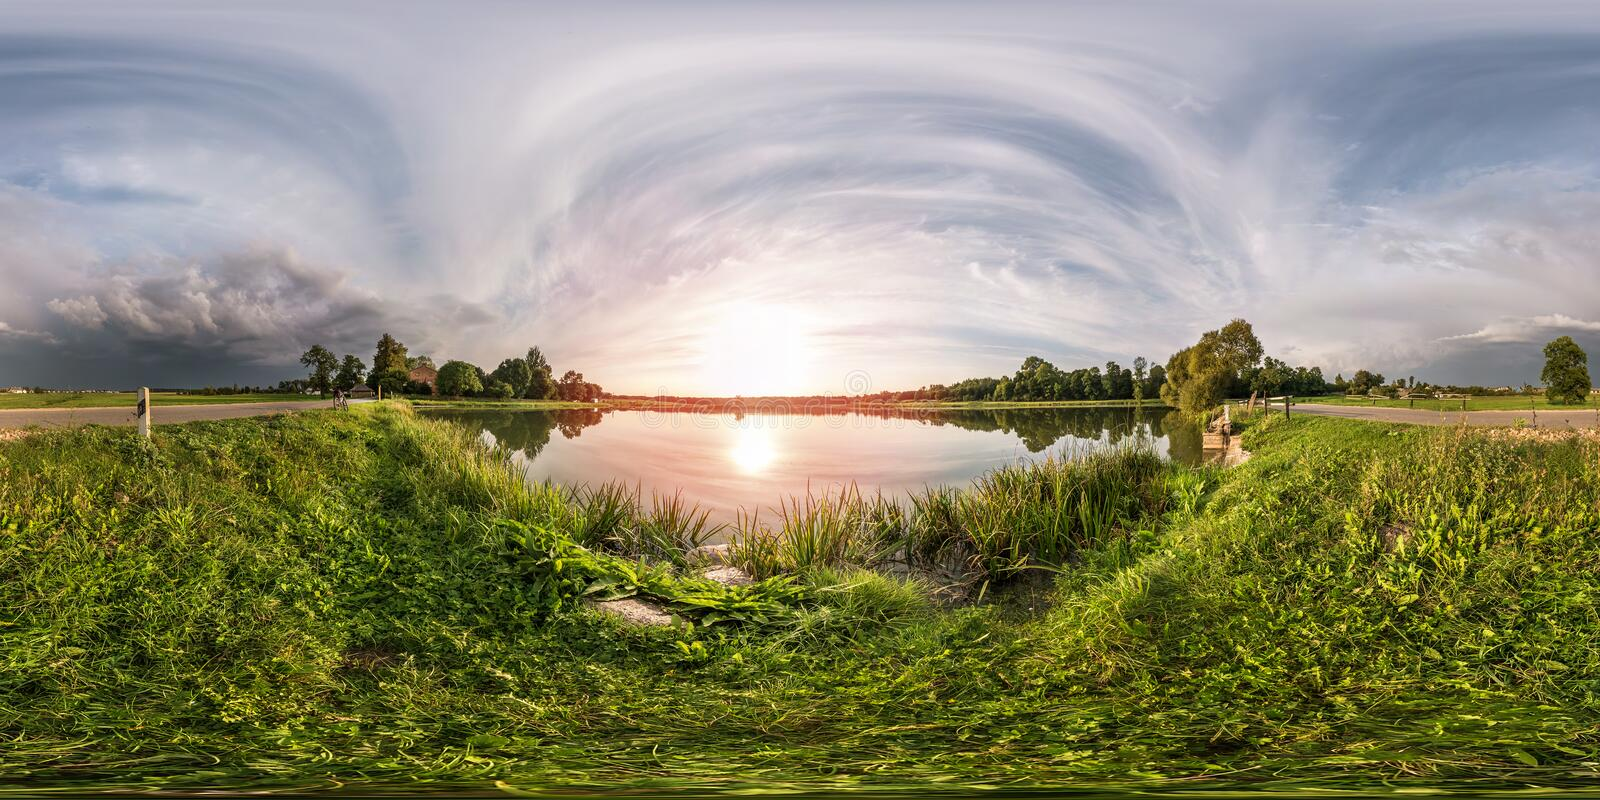 Full seamless spherical panorama 360 by 180 angle view on the shore of lake in evening before storm in equirectangular projection royalty free stock images